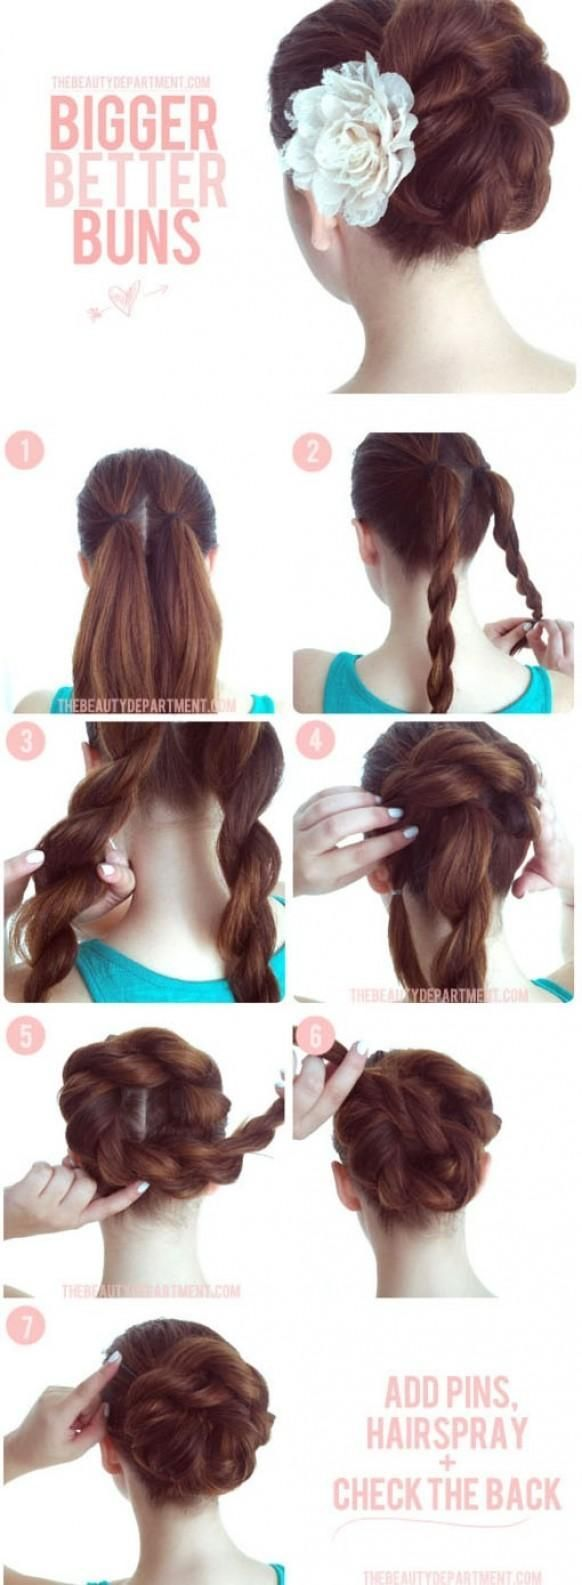 long hairstyles for girls step by step tutorial & trends with pictures